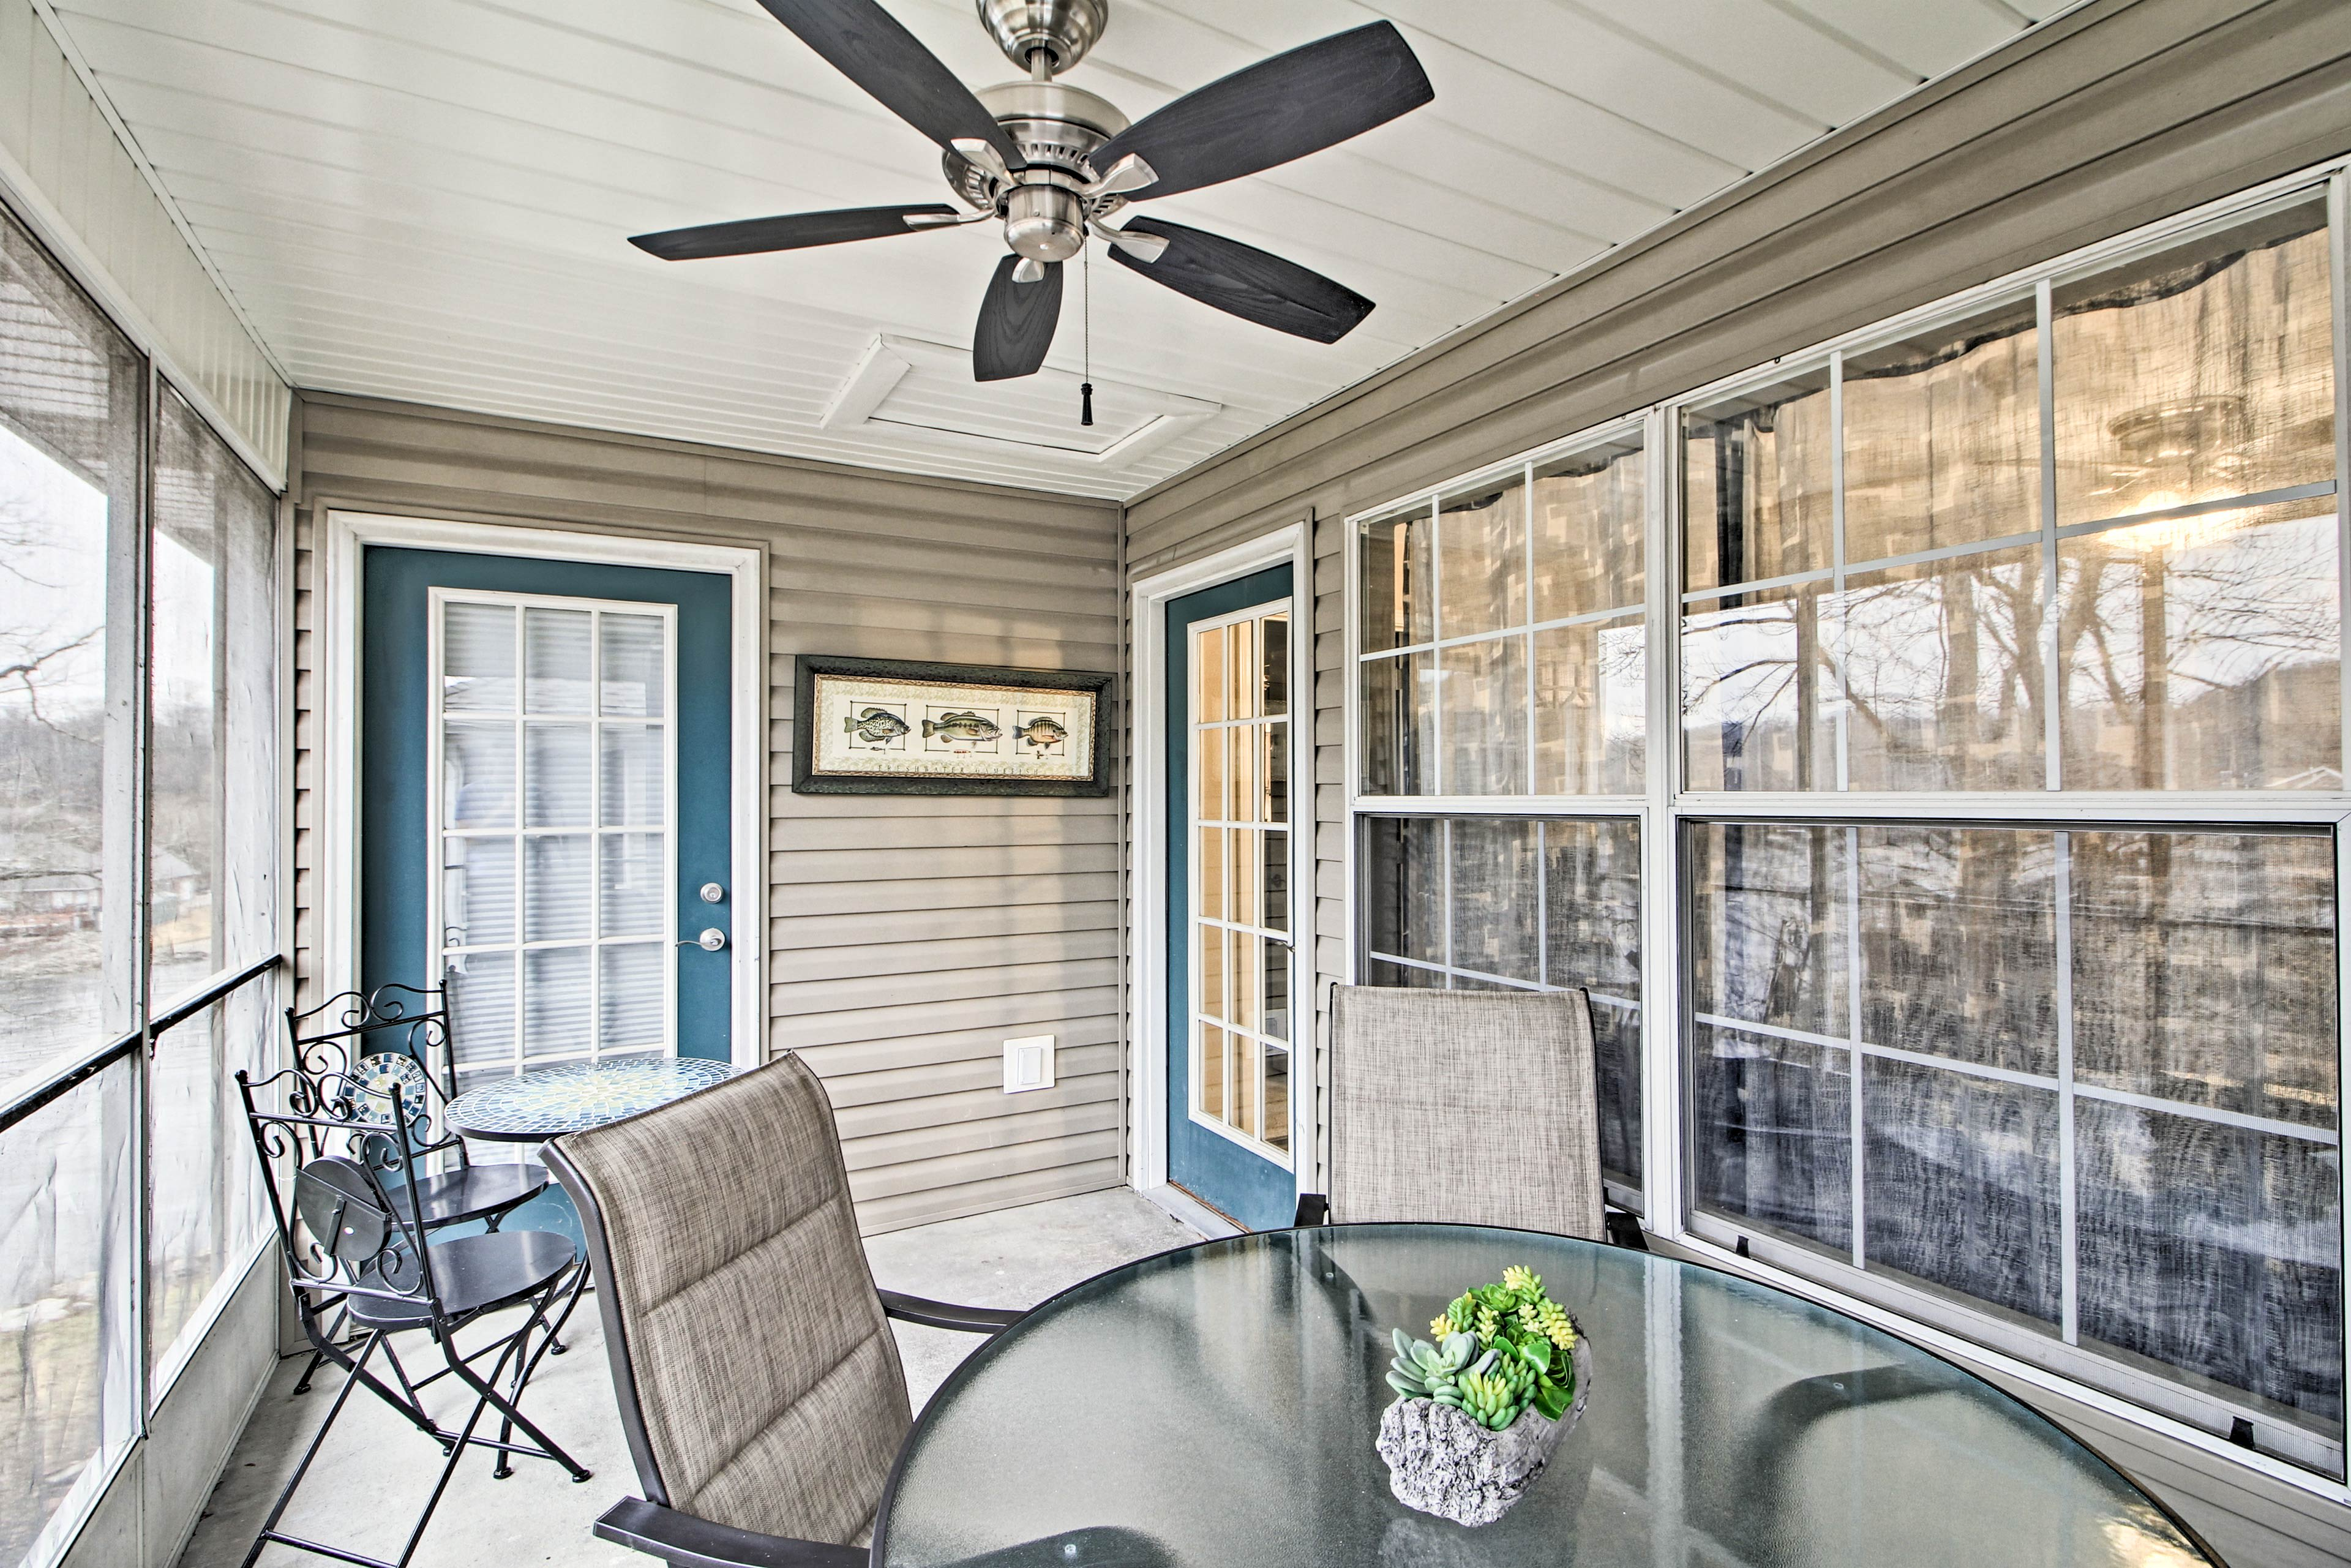 Spend peaceful mornings & relaxing evenings on the screened-in porch.